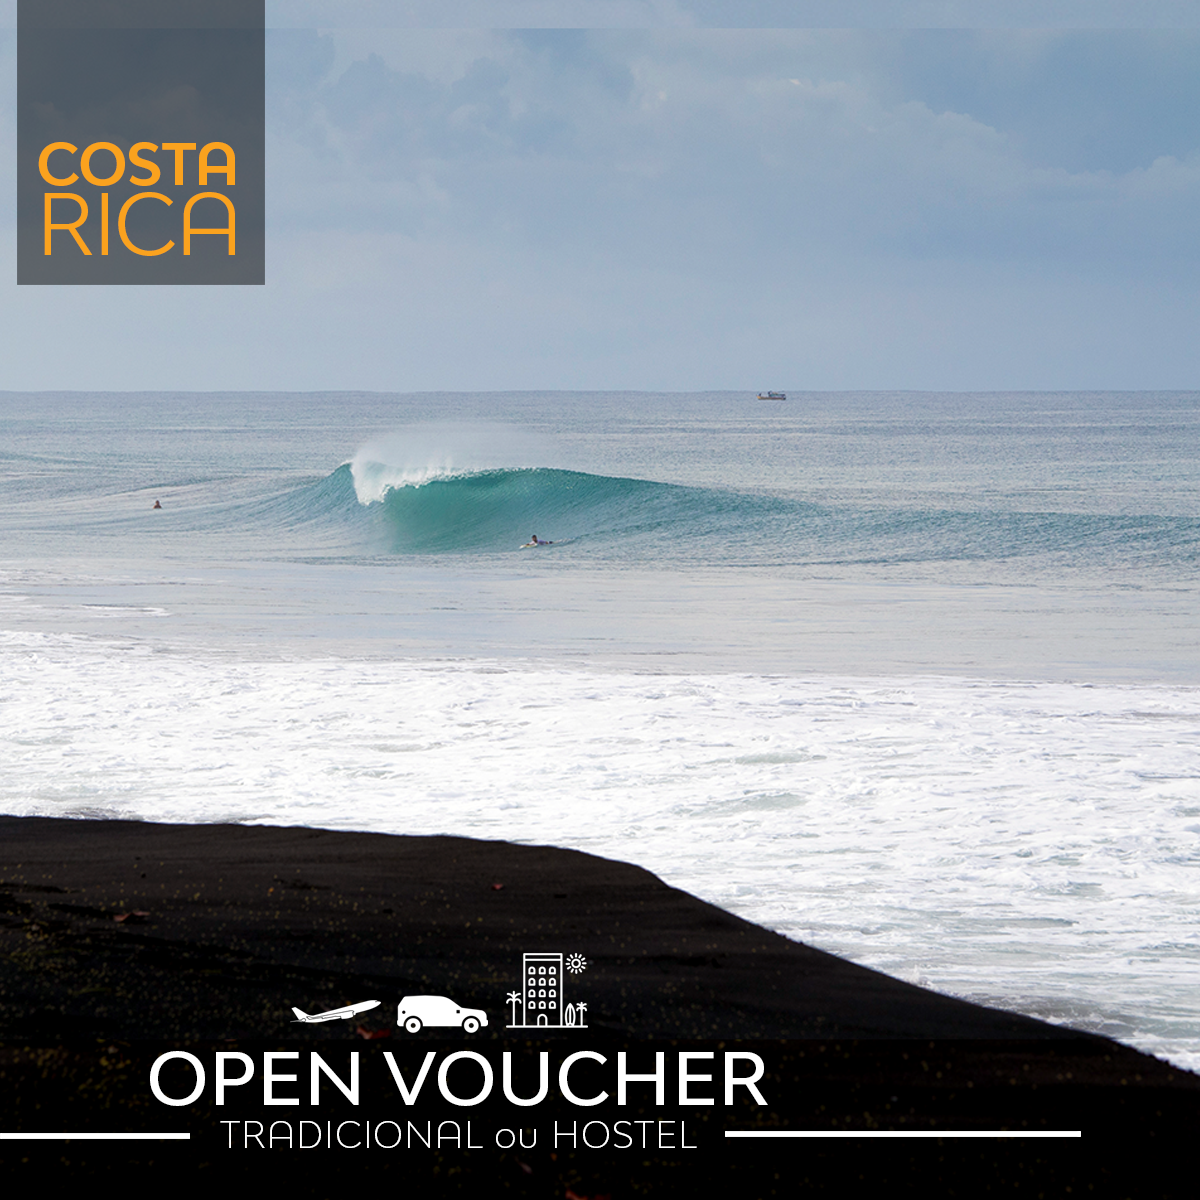 Open Voucher Costa Rica